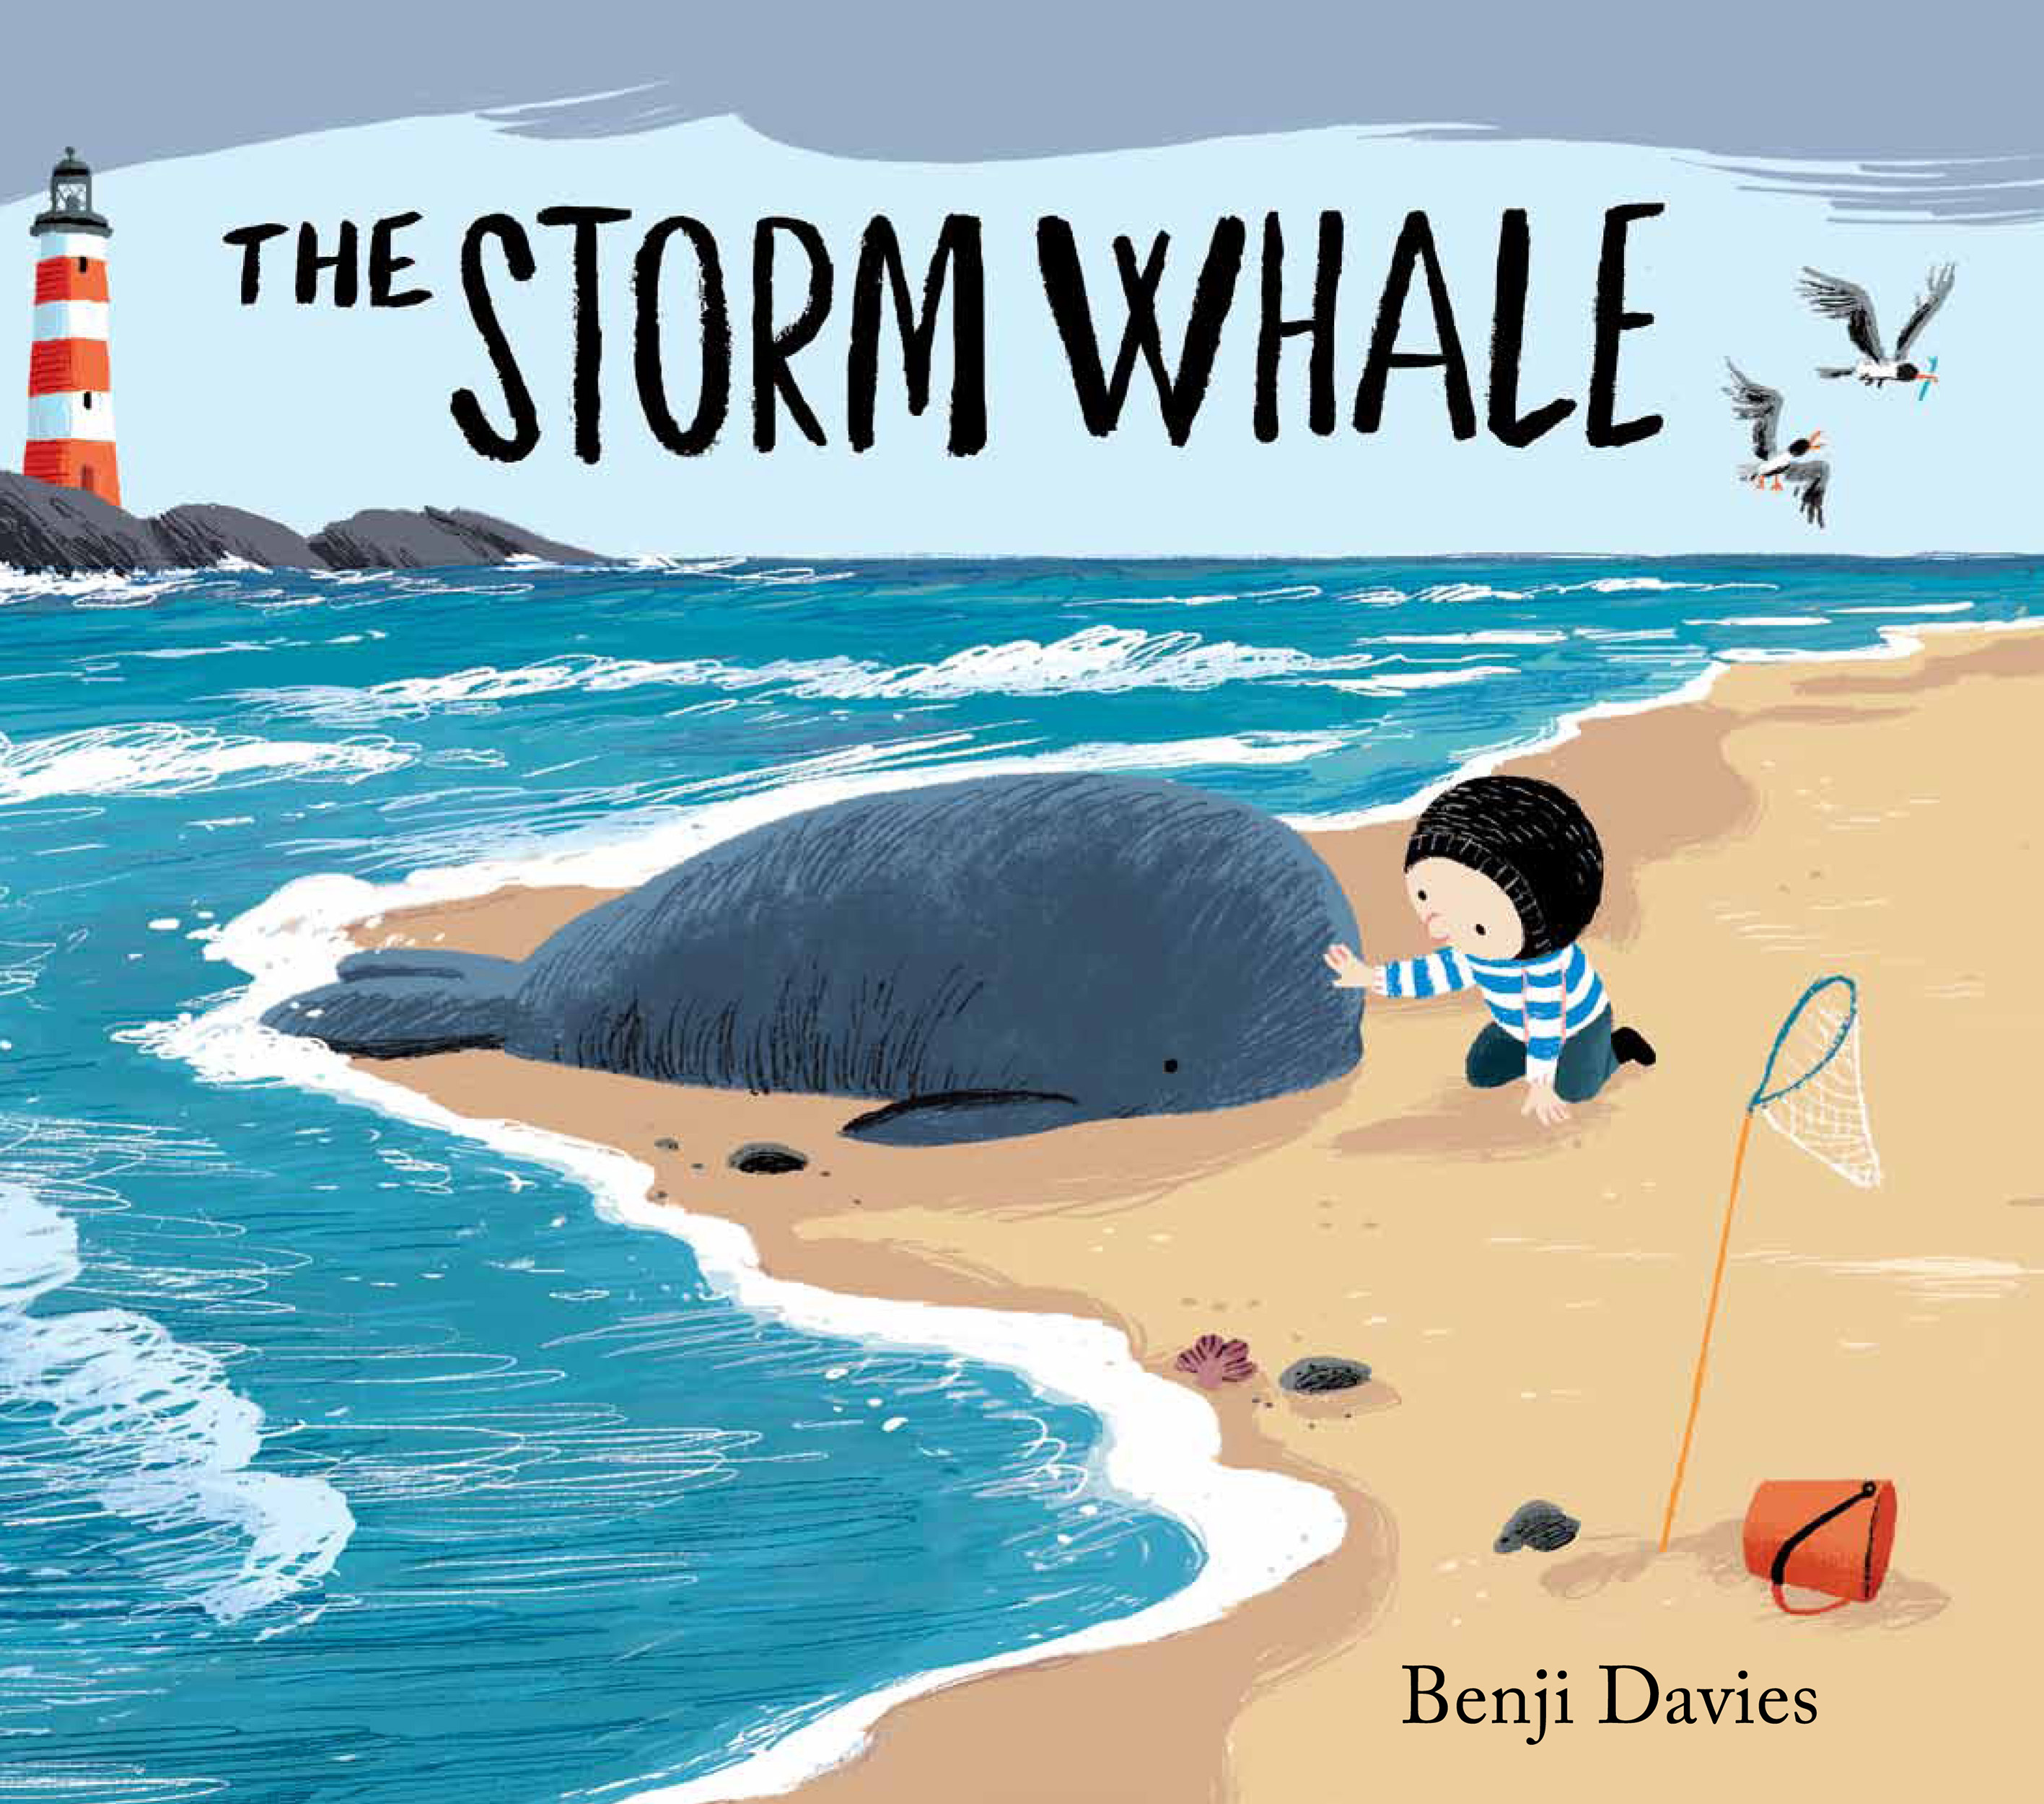 Book of the Week: The Storm Whale